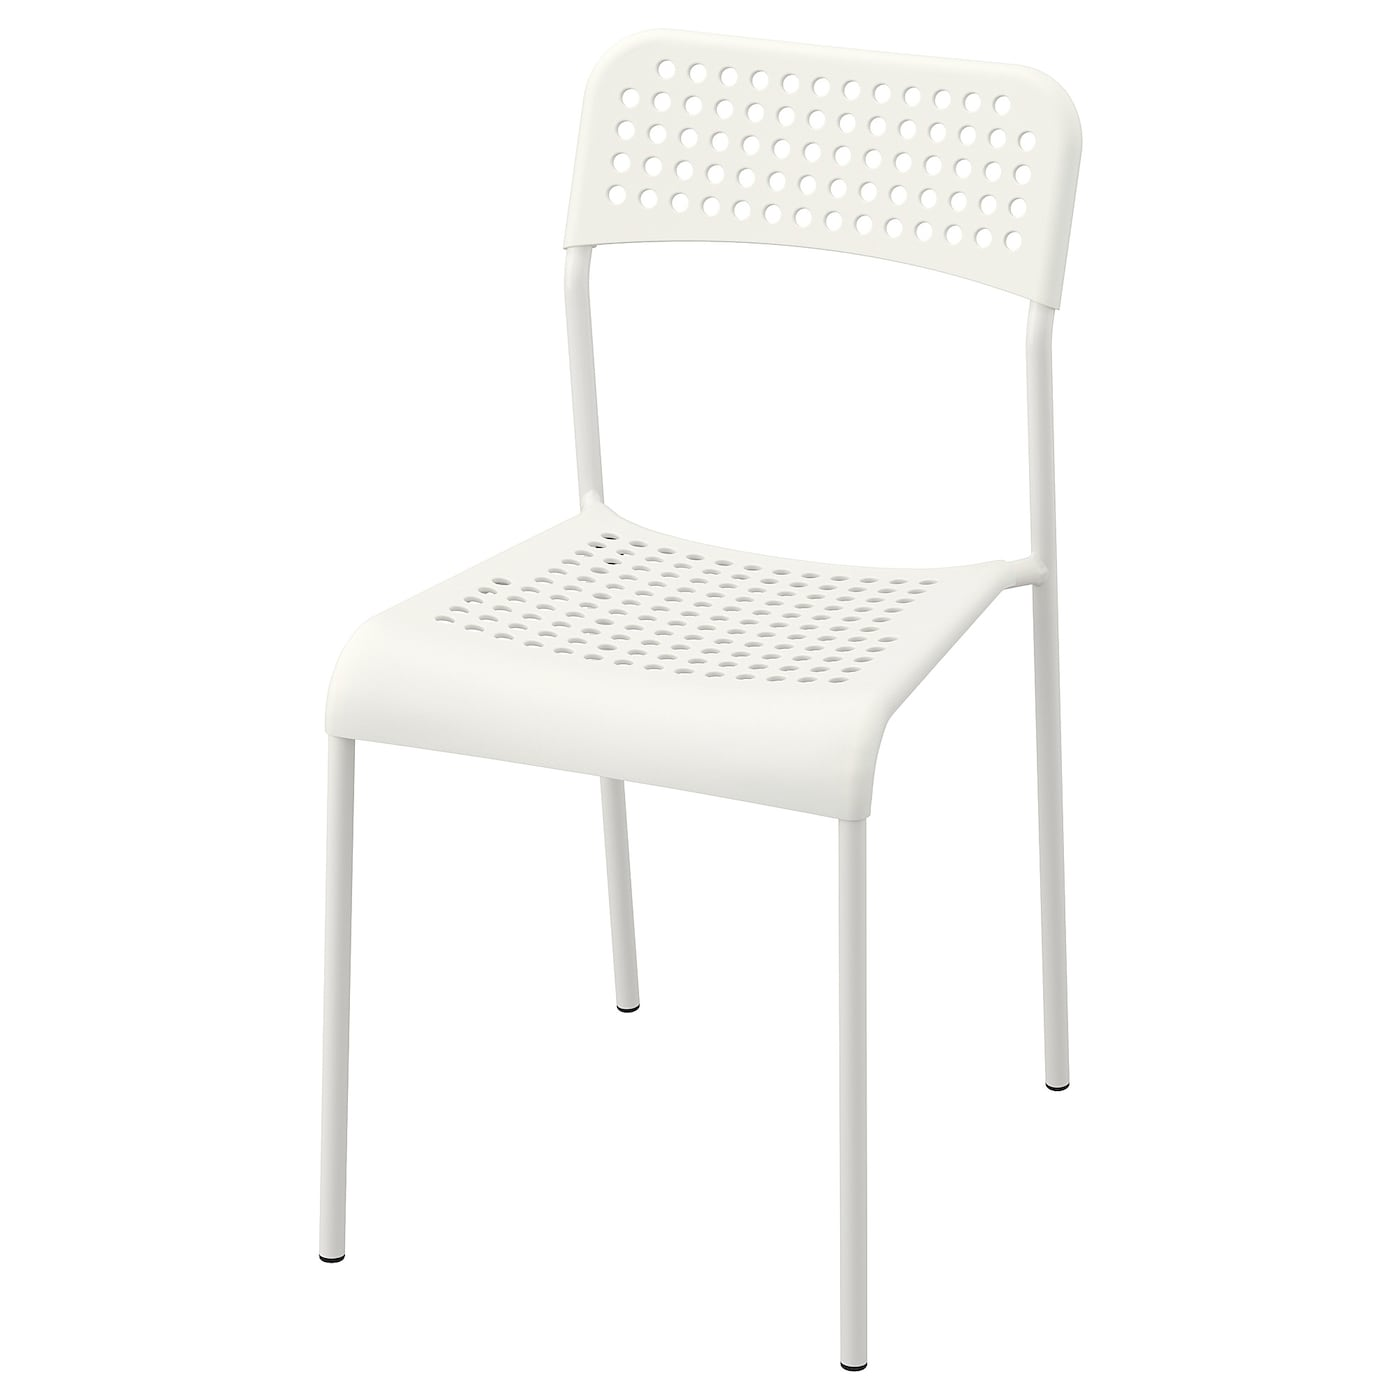 Chair Adde White